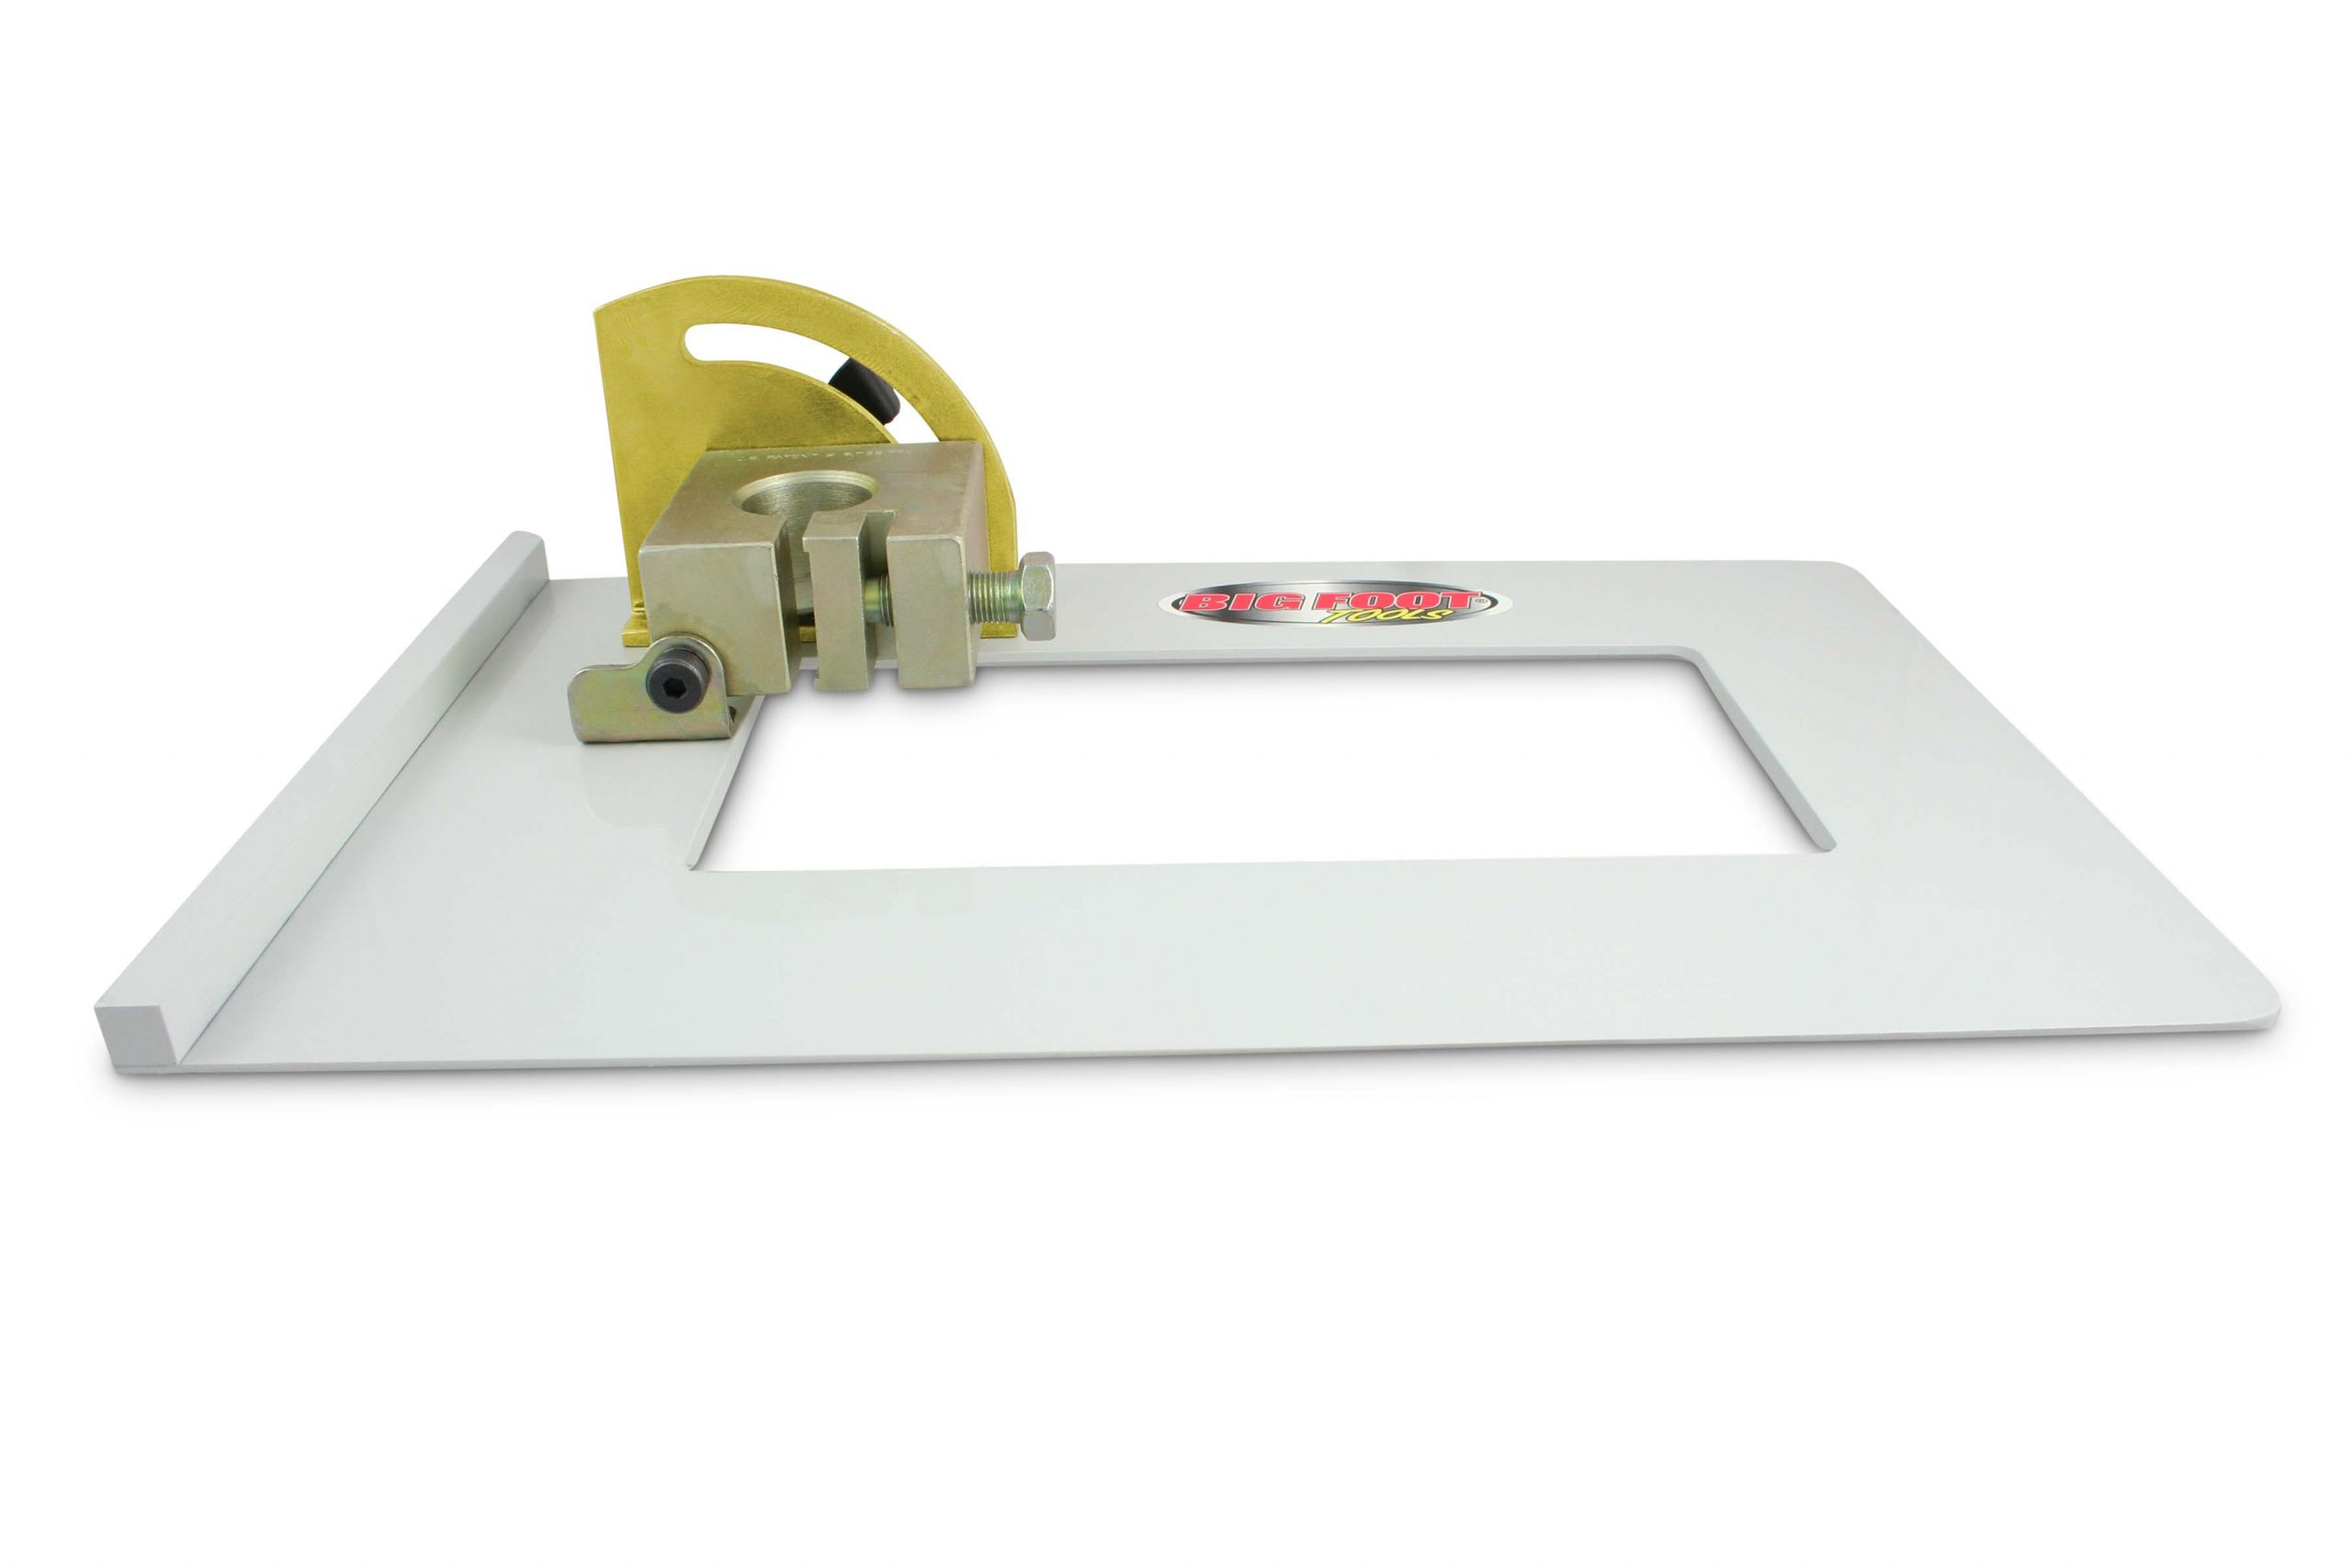 Big Foot Head Cutter – Built in Guide Fence